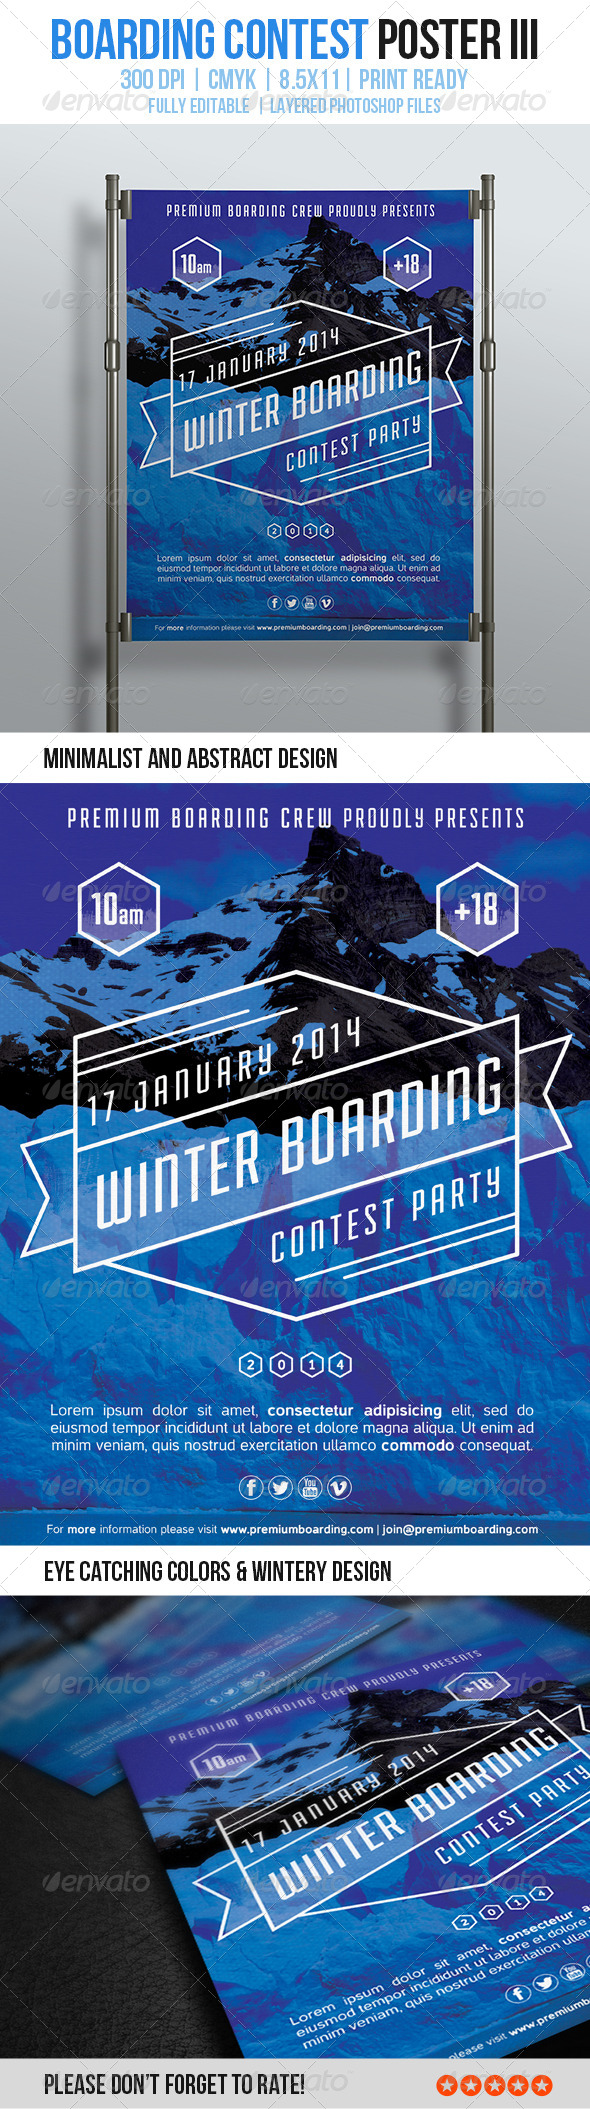 GraphicRiver Boarding Contest Poster III 6172408